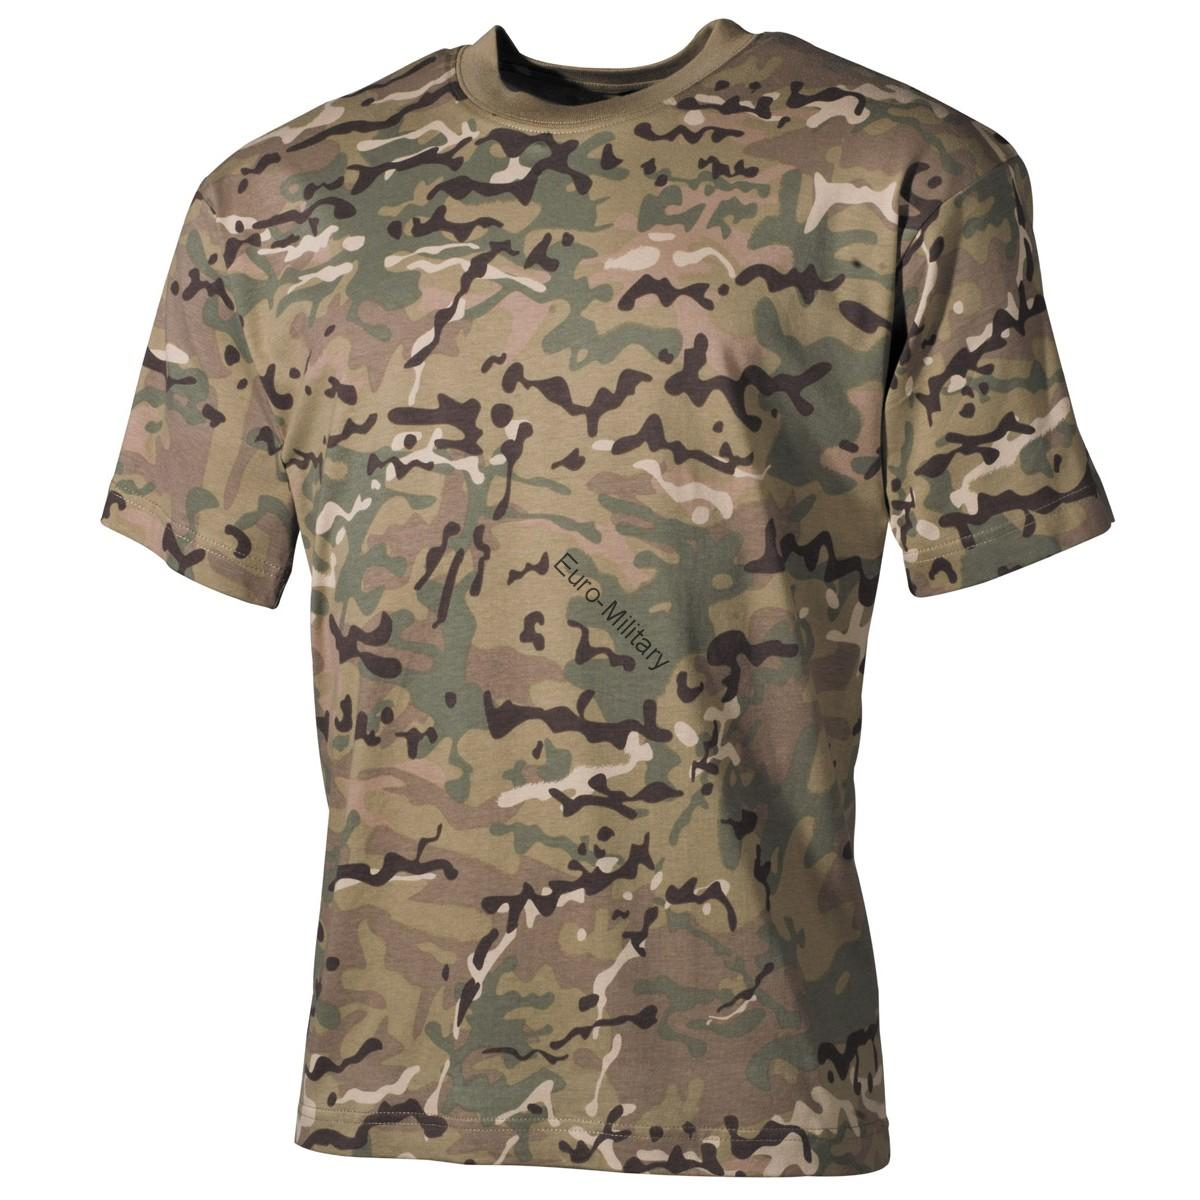 US Army Multicam Camo T-Shirt - Short Sleeve